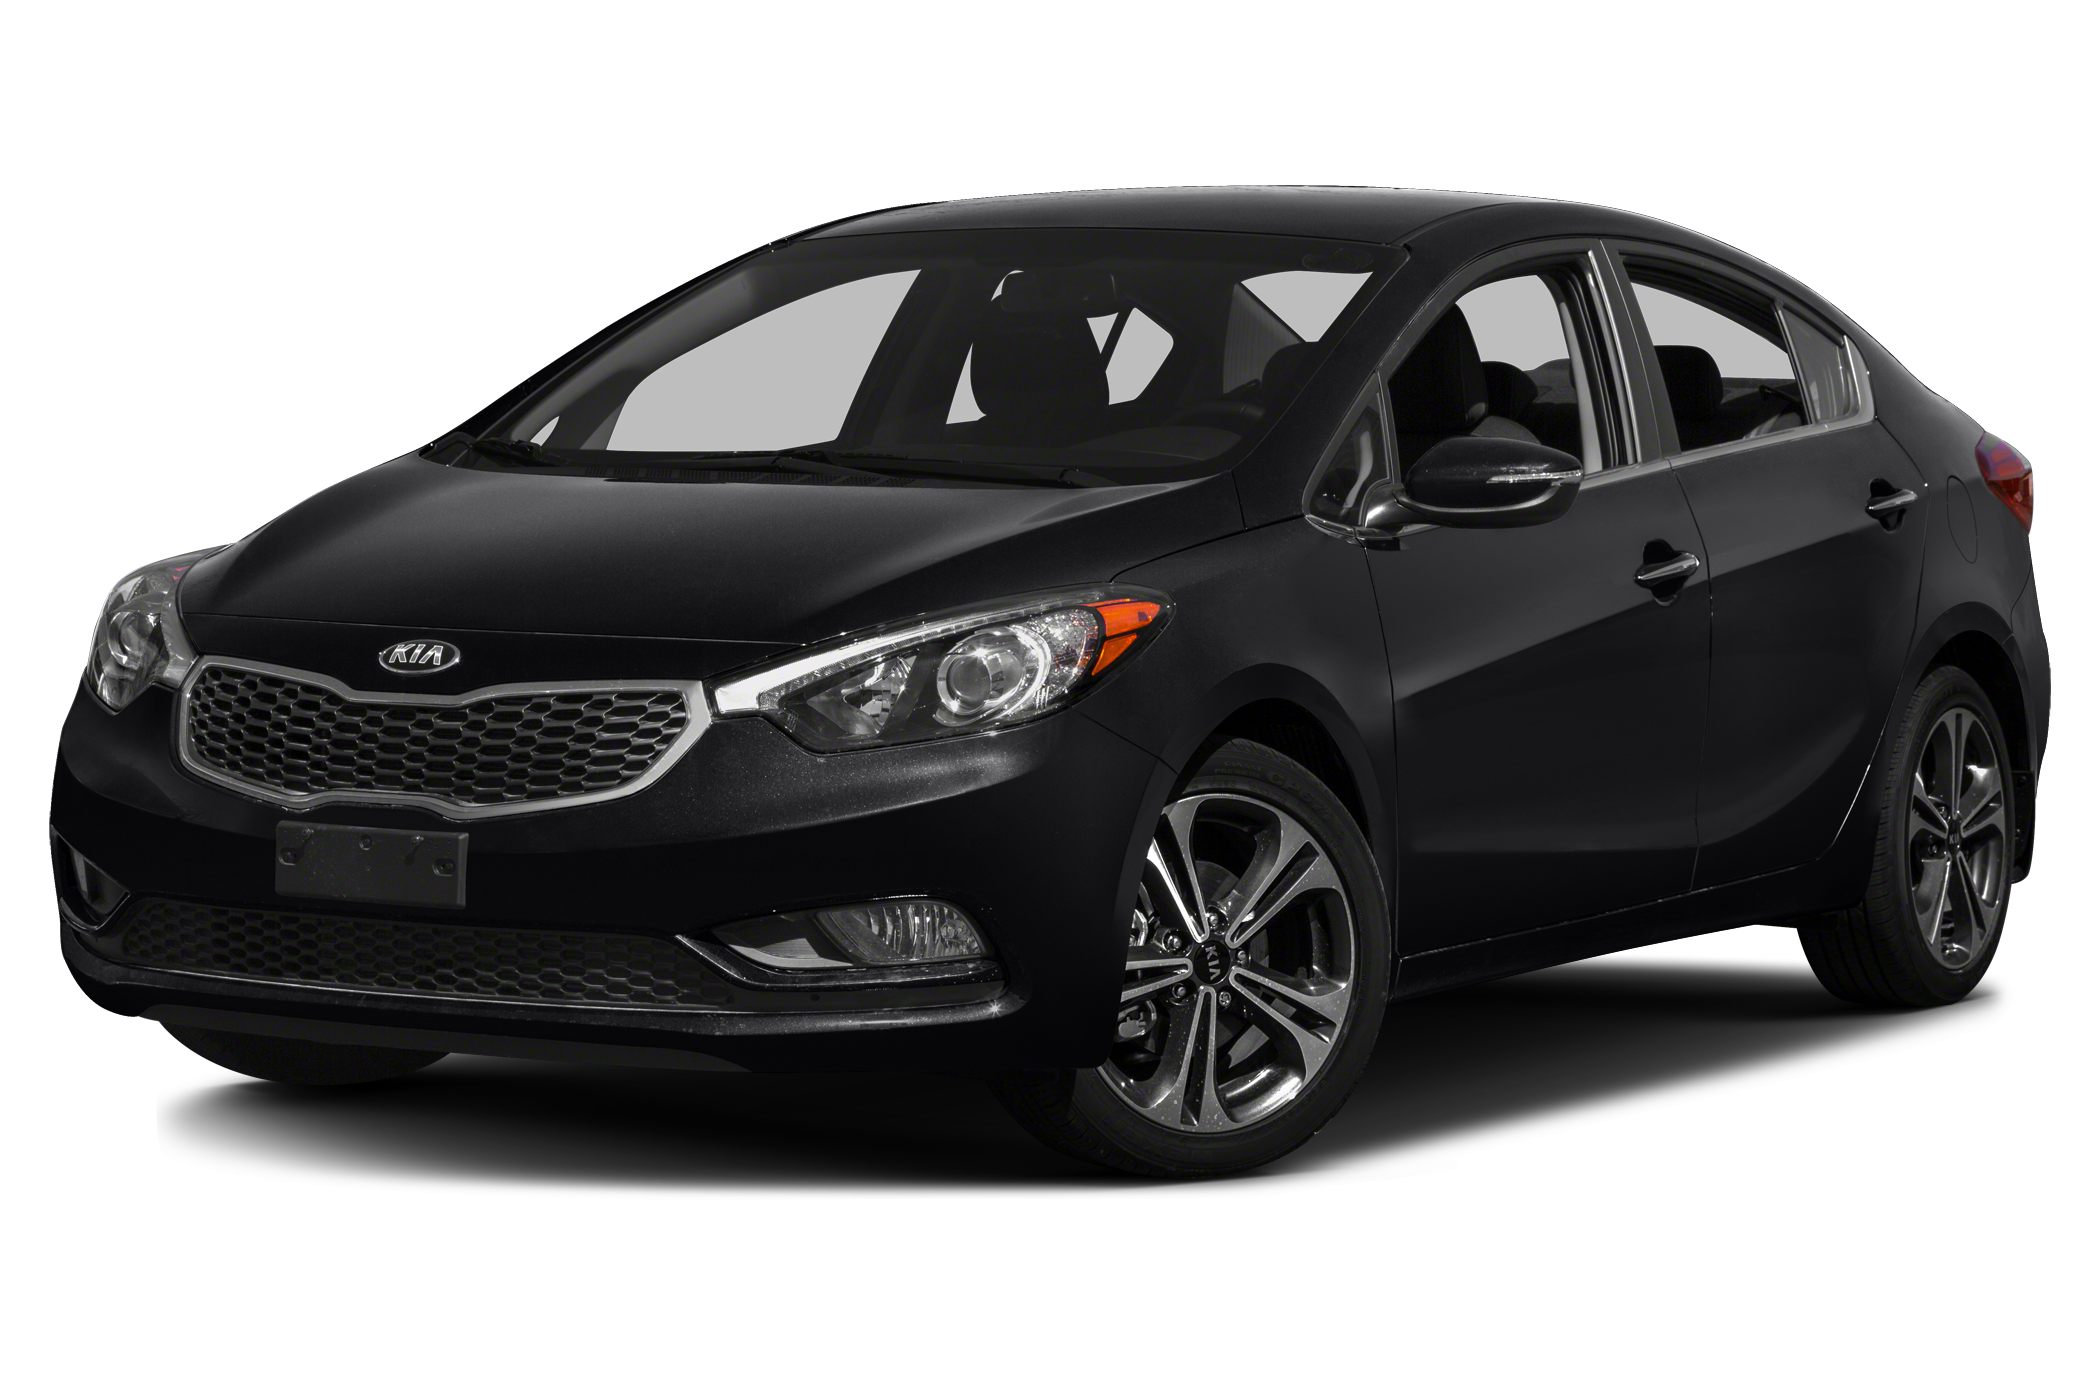 2014 Kia Forte LX Vehicle Options ABS Brakes Keyless Entry Tachometer Air Conditioning Passenger A